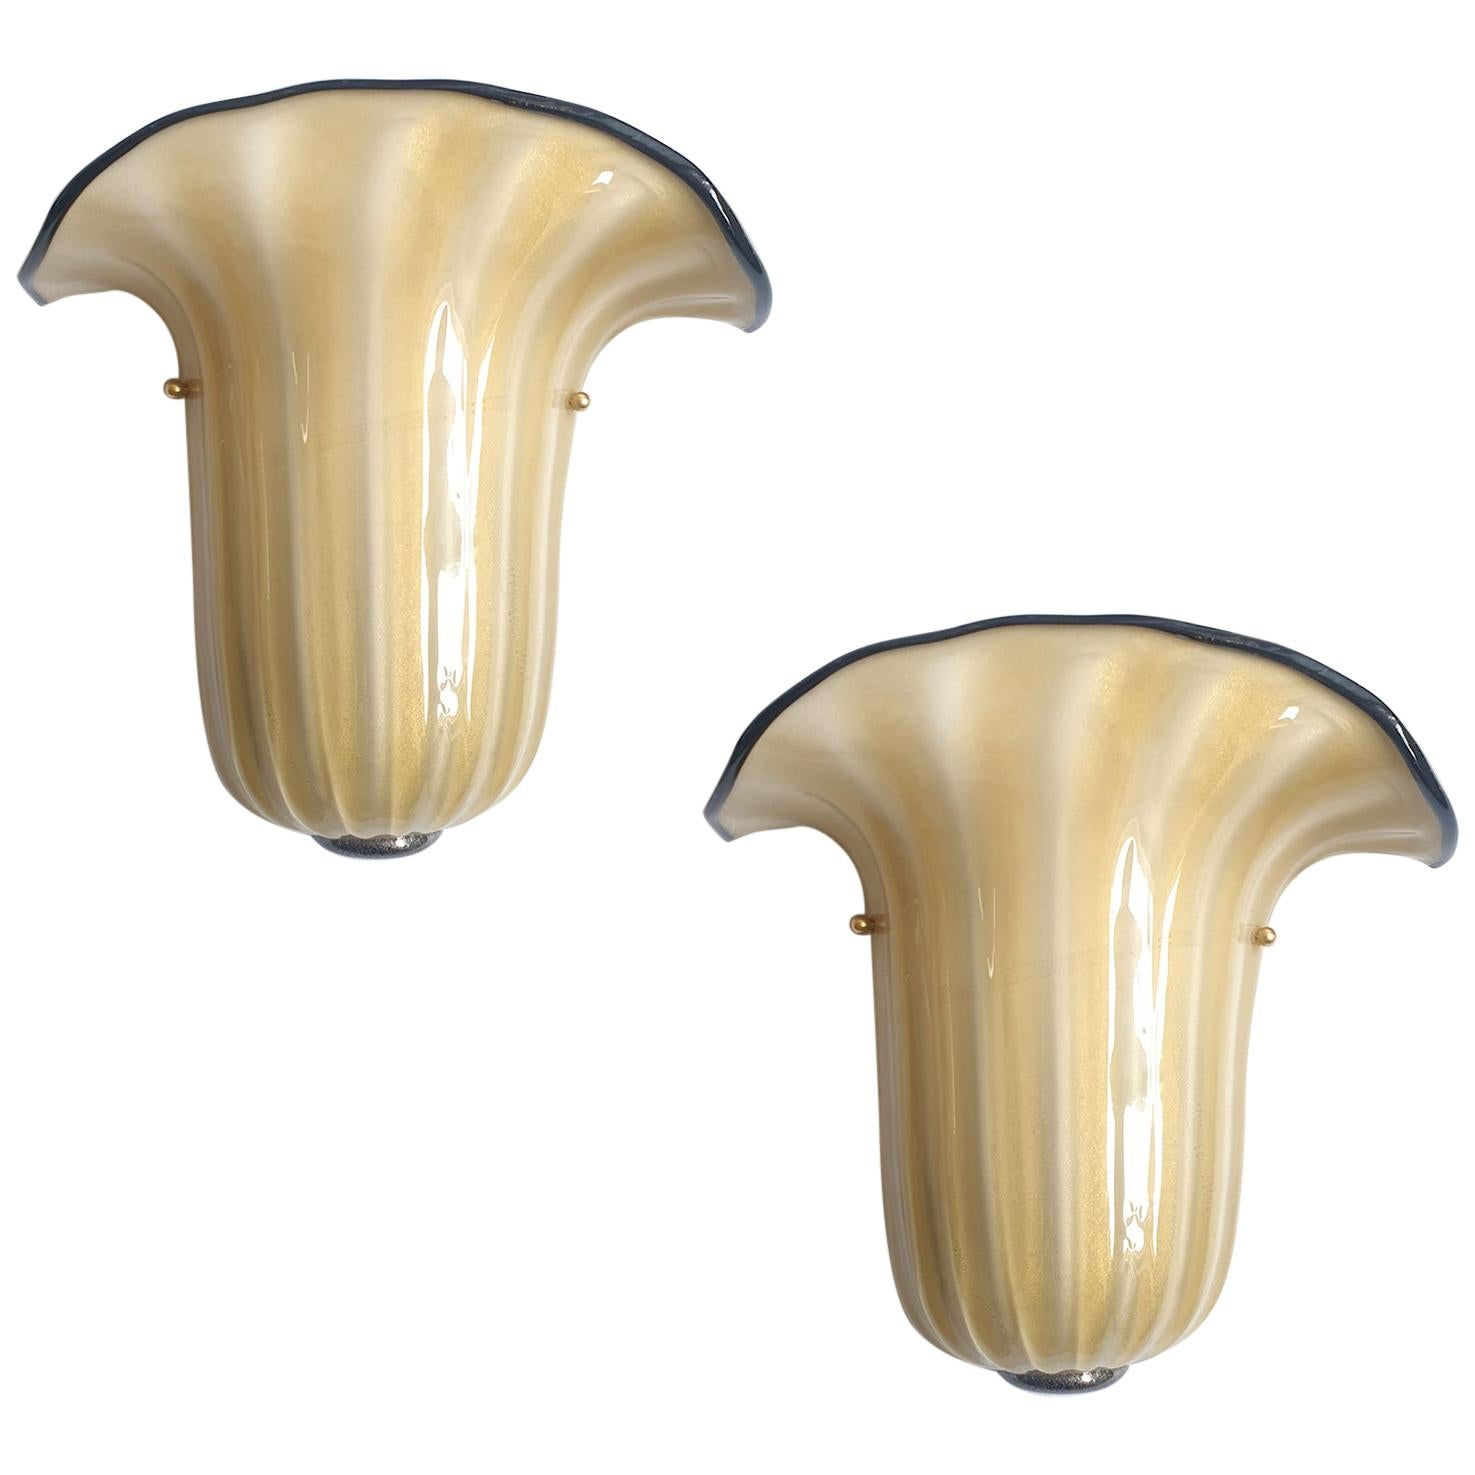 Pair of Mid-Century Modern Beige Murano Glass Sconces, Seguso Style, Italy 1970s